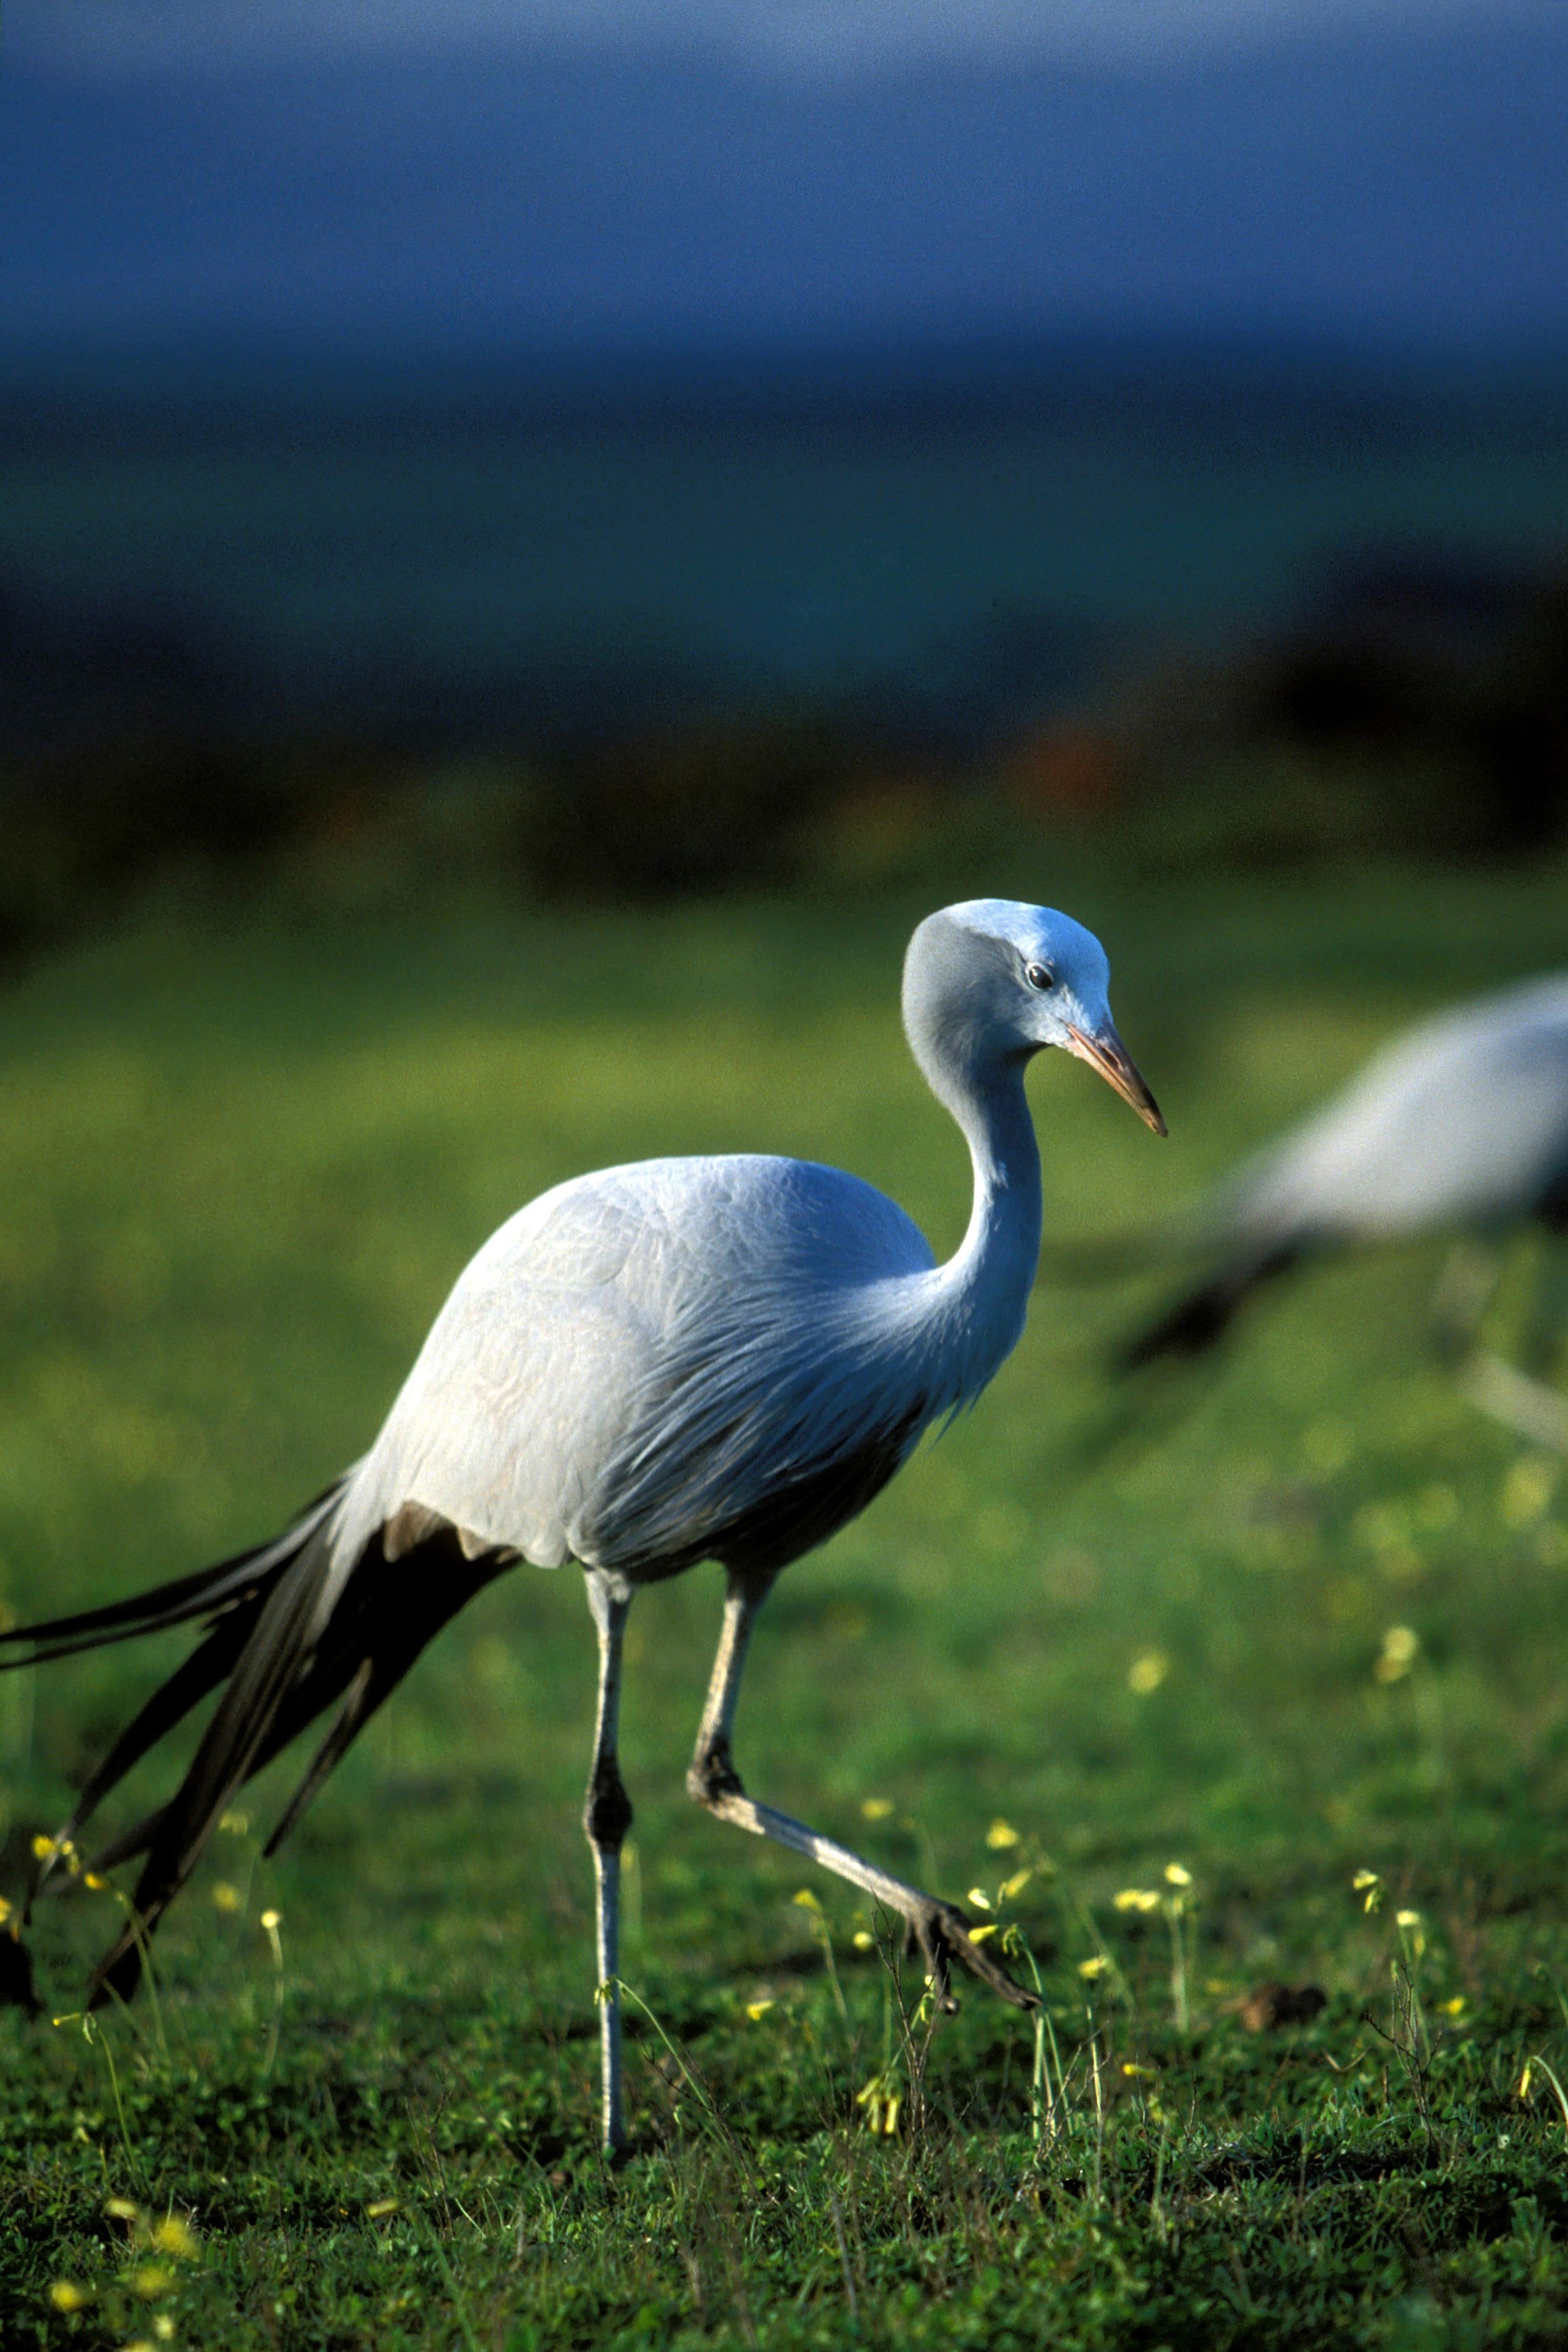 Blue Crane in the meadow (00011113)